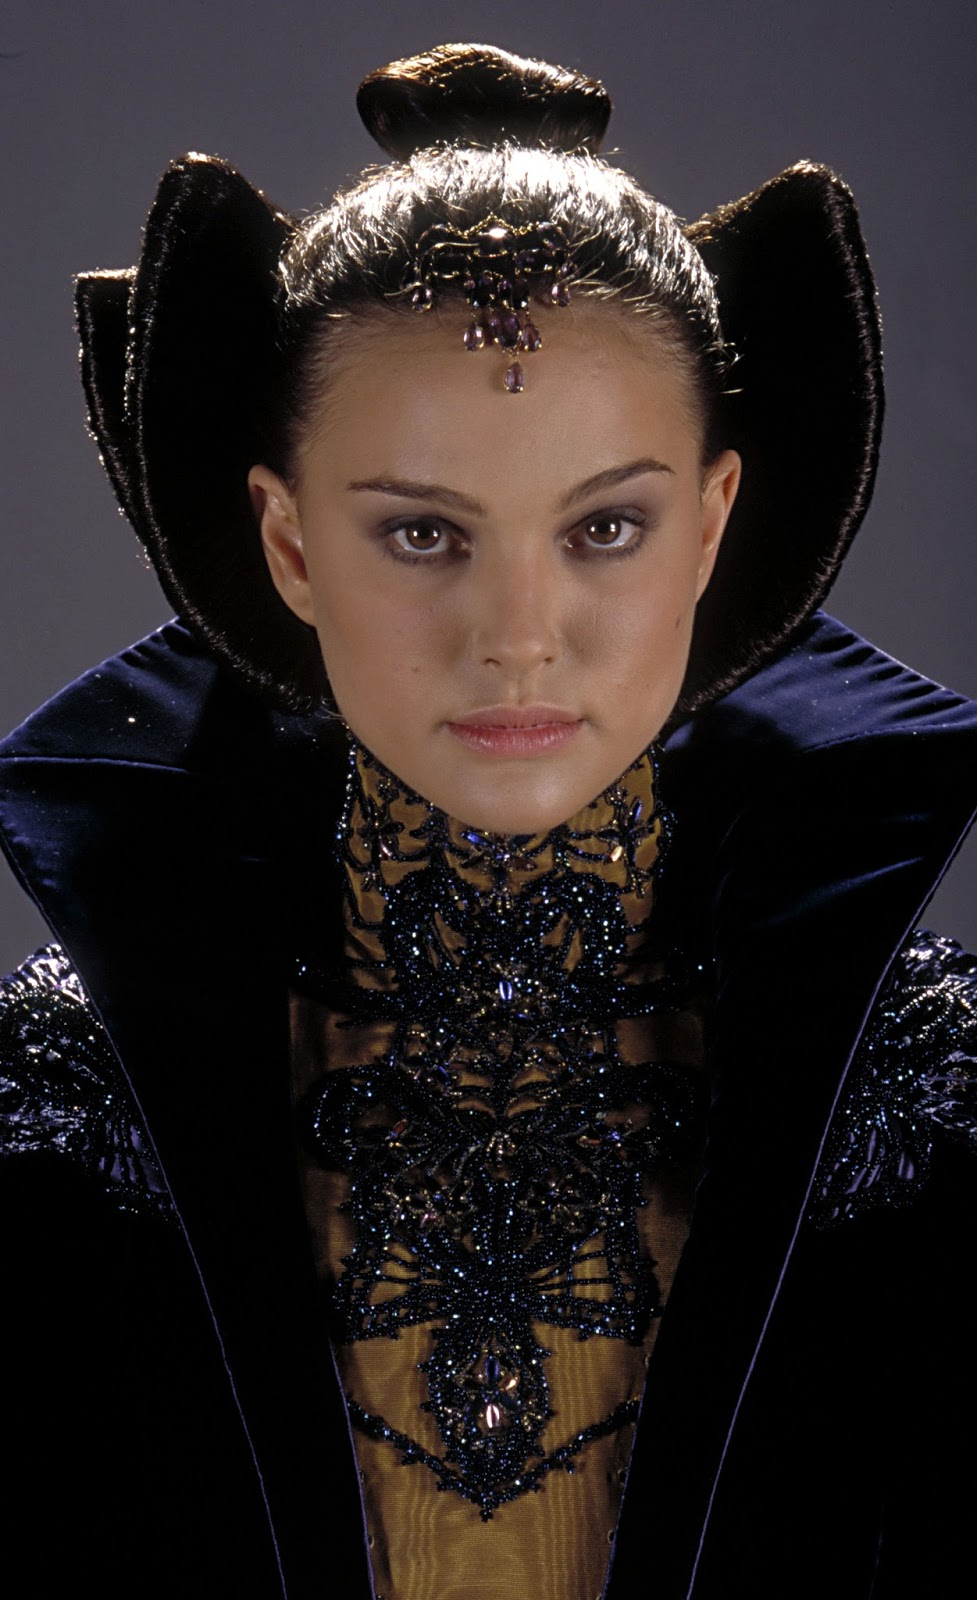 Star Wars Padme